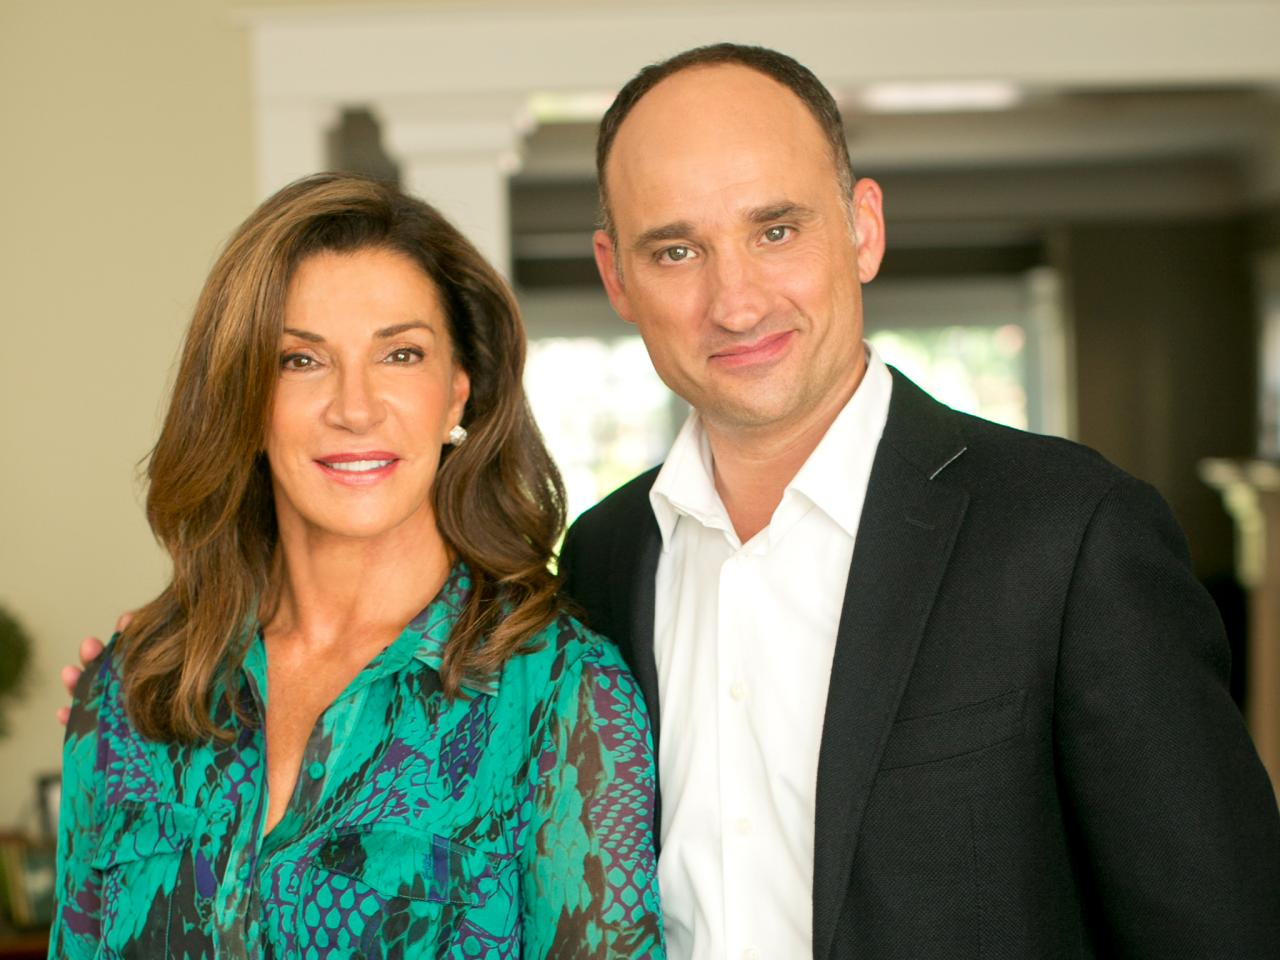 Hilary Farr and David Visentin of Love It or List It